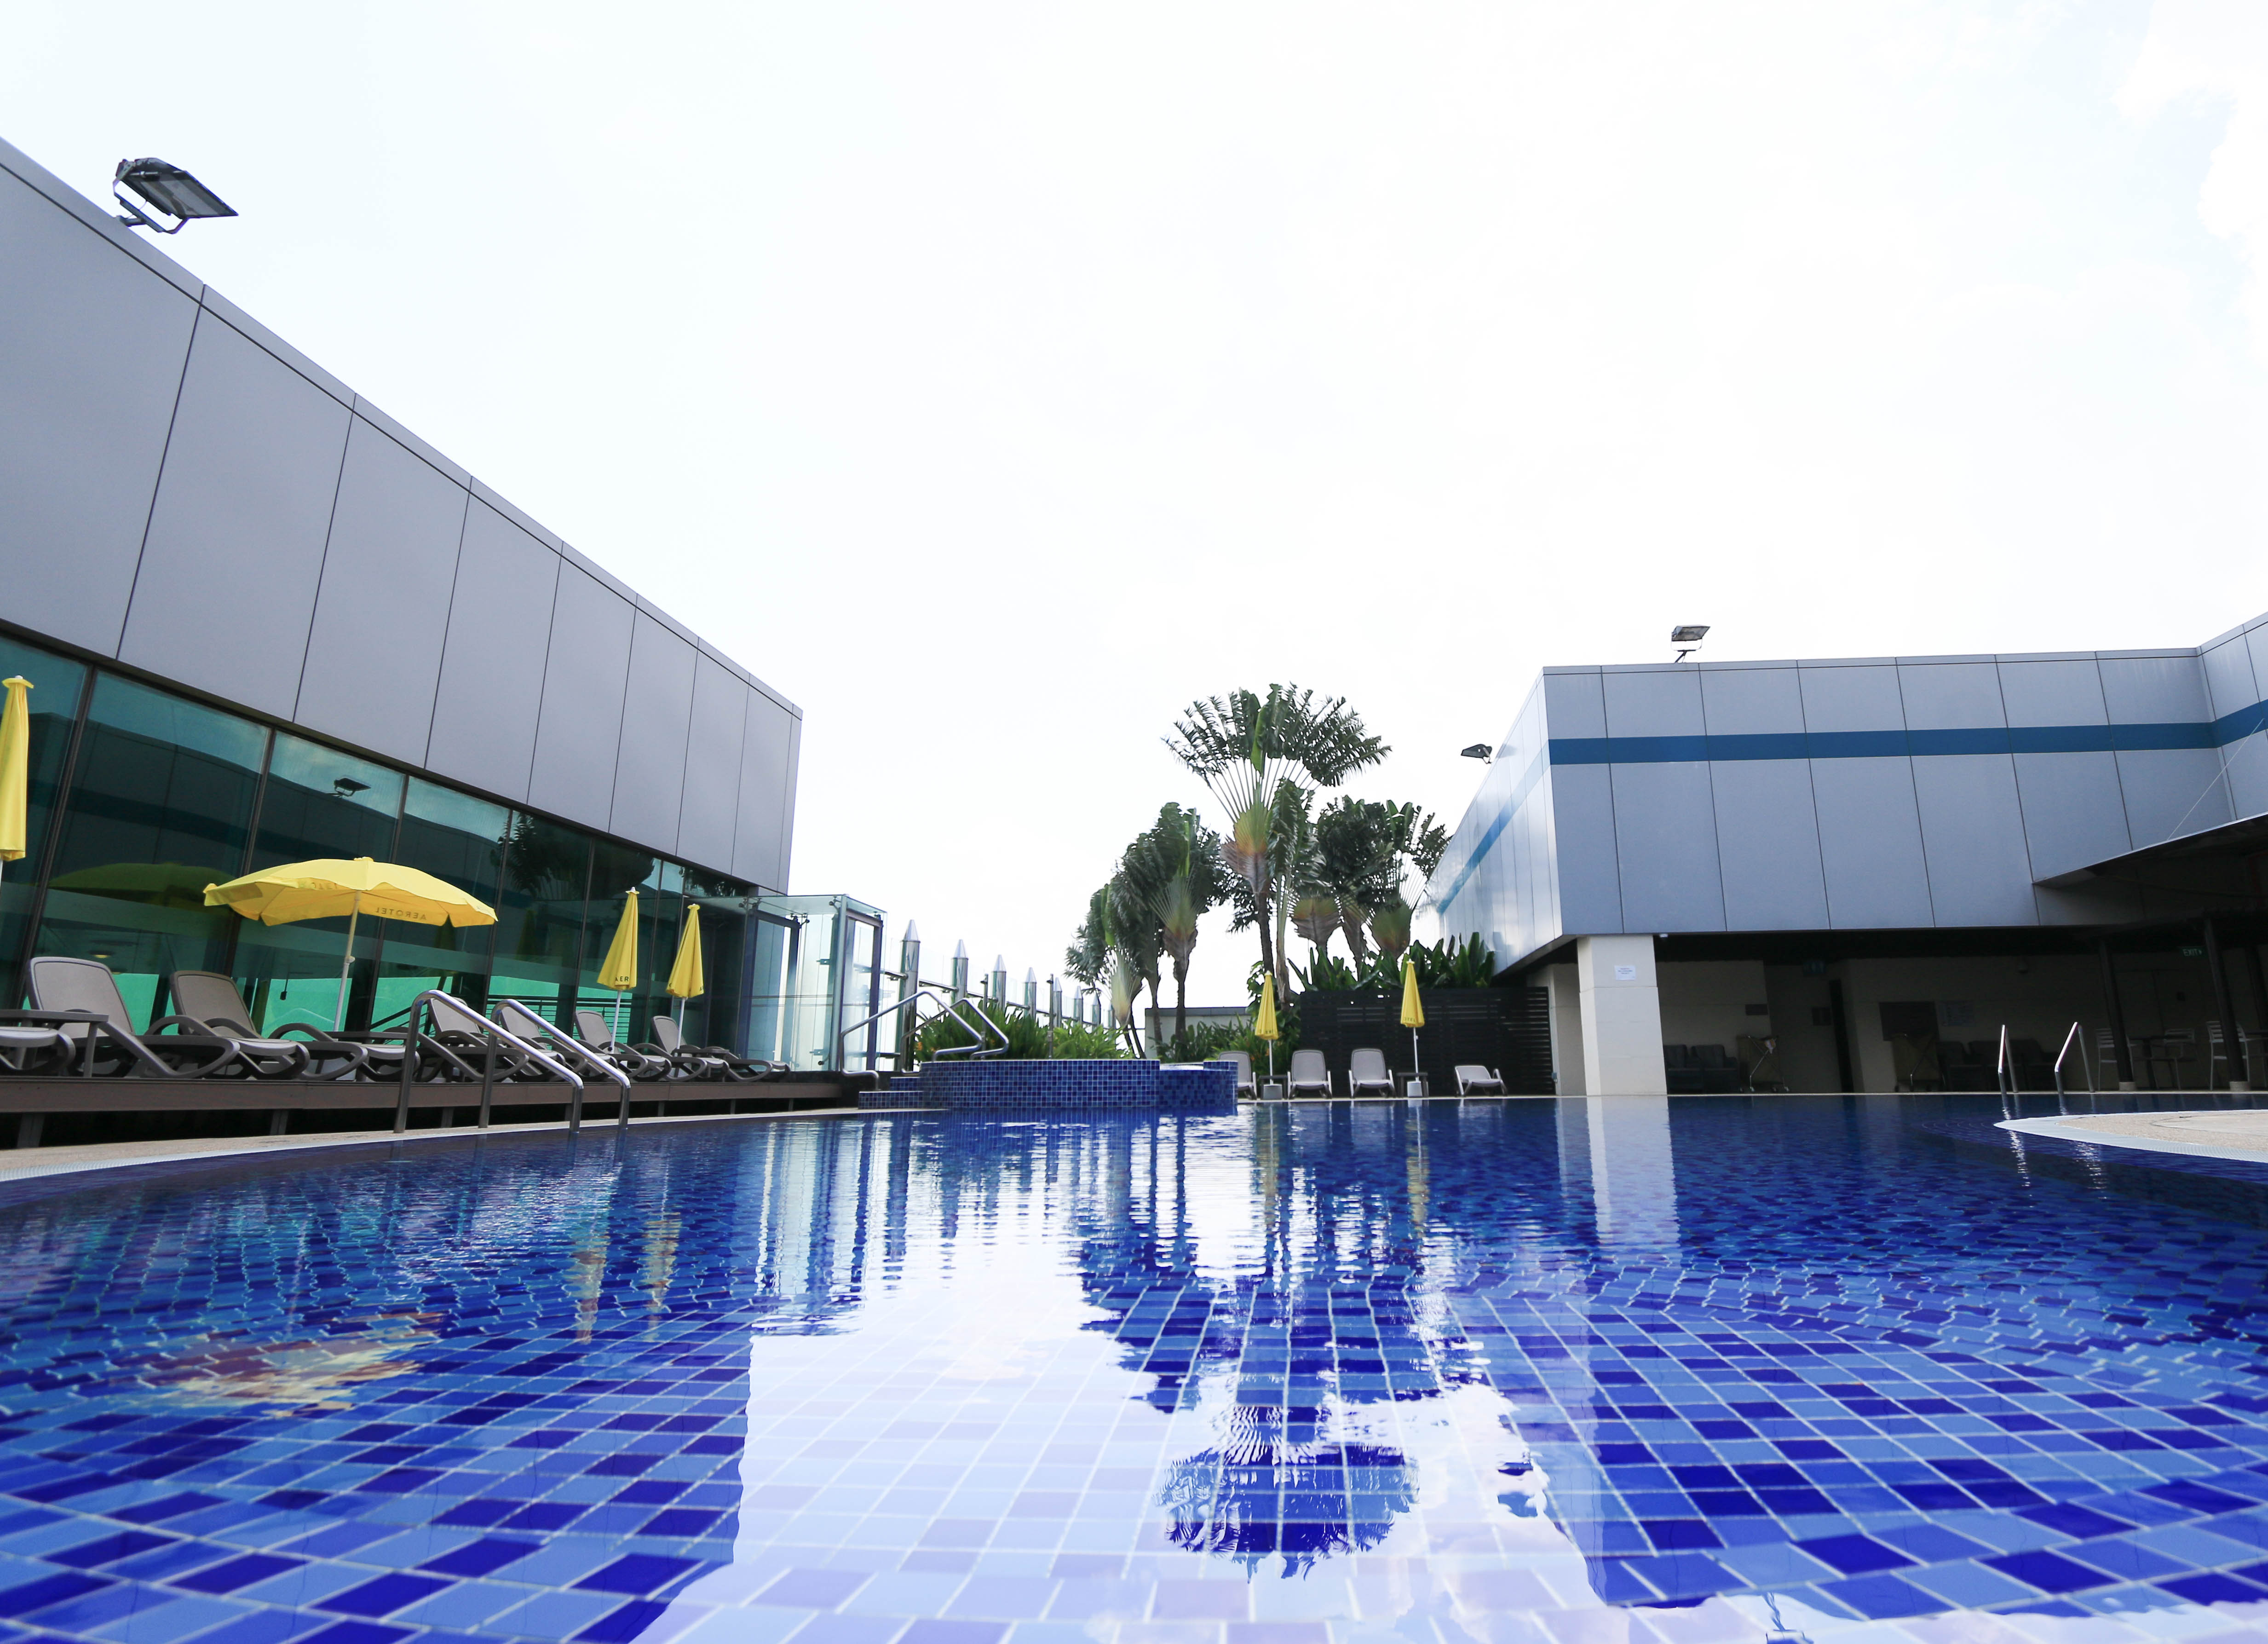 Rooftop swimming pool For travellers who want to relax and refresh themselves, what better way than swimming and letting yourself unwind under a stream of hot water in a Jacuzzi. Located at Terminal 1, Changi's rooftop swimming pool comes with a poolside bar and shower facilities. Access to the pool is complimentary for guests of the transit hotels.